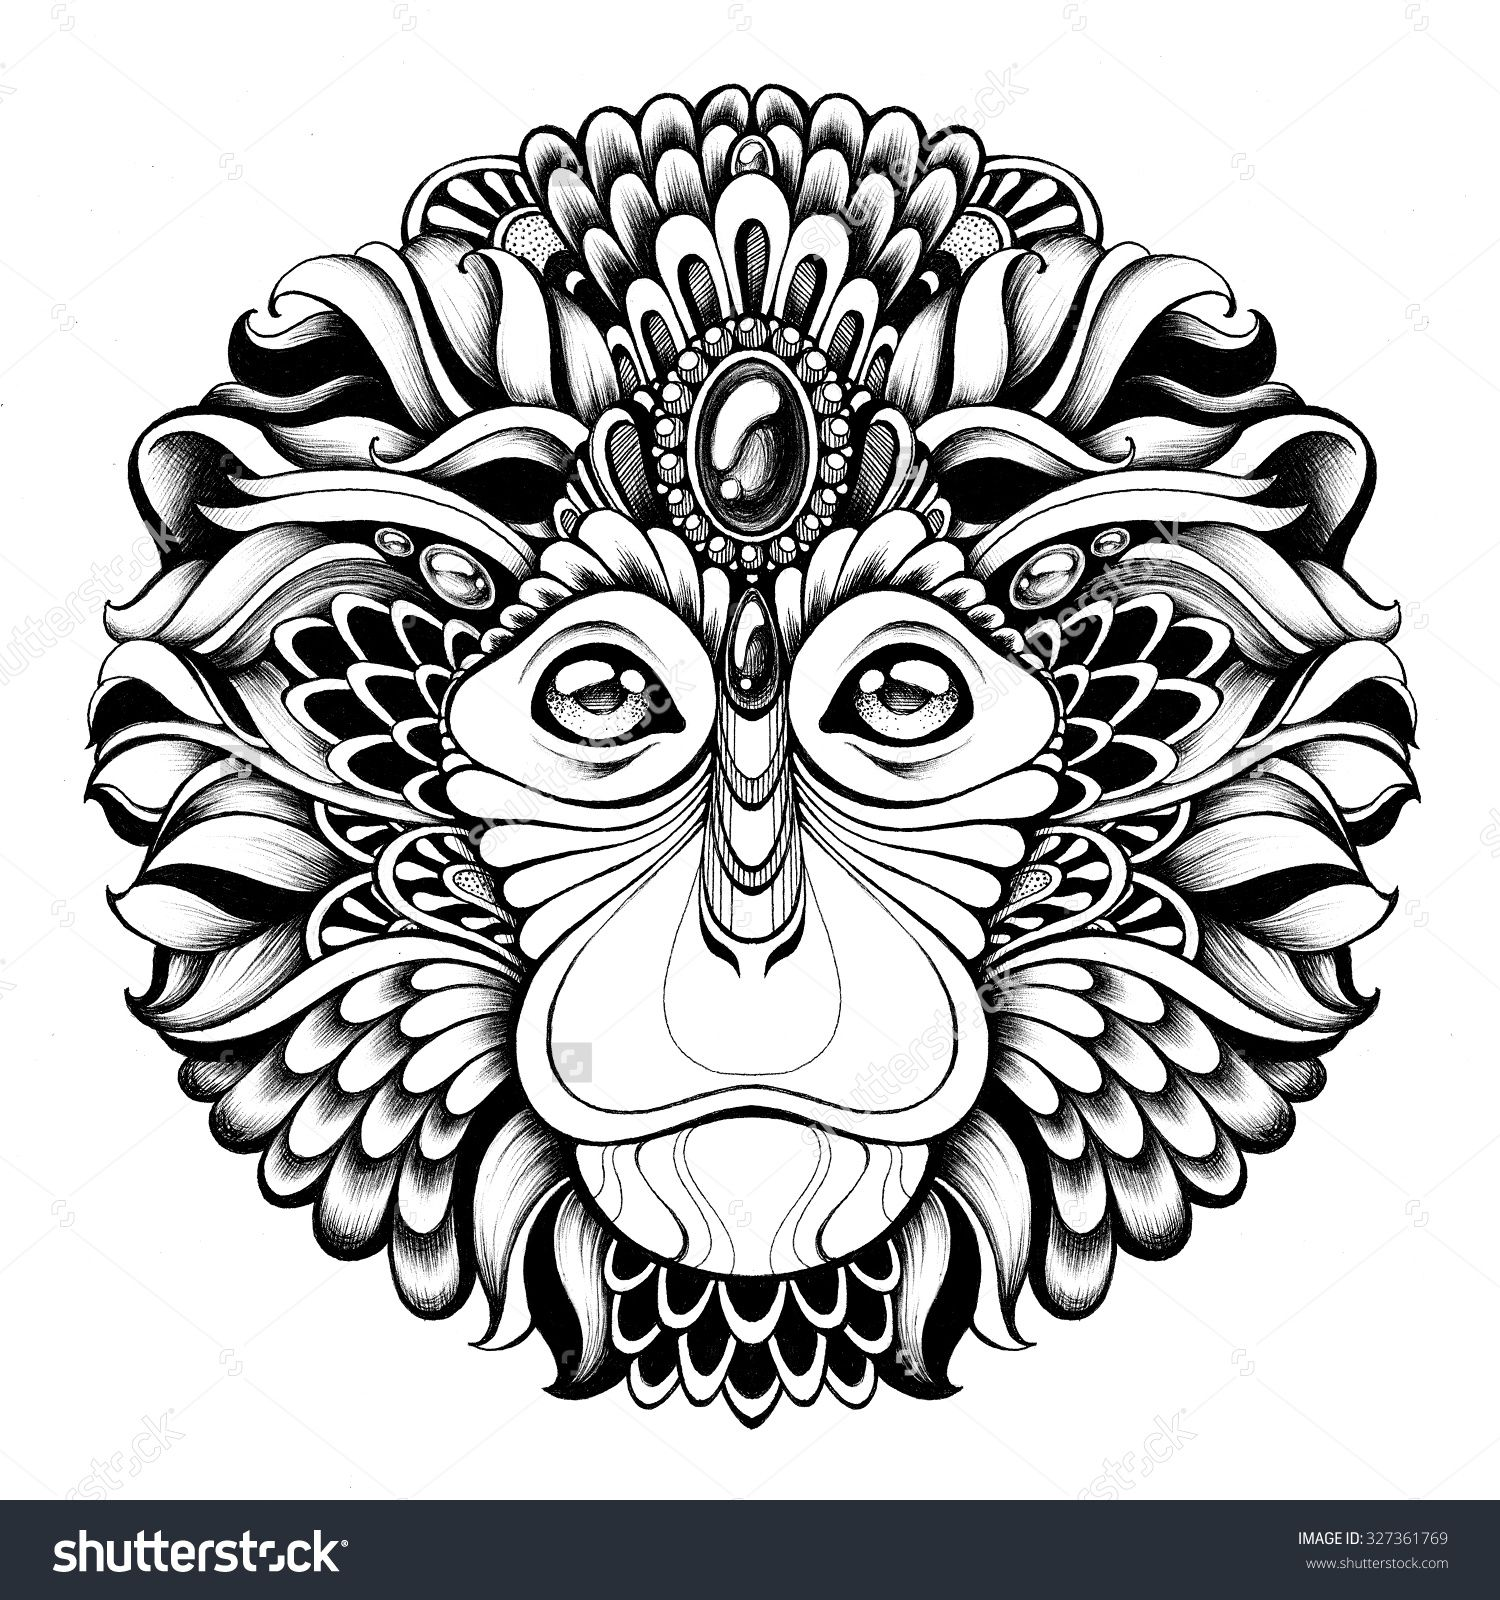 The monkey king highly detailed abstract ornate zentagle for Year of the monkey tattoo